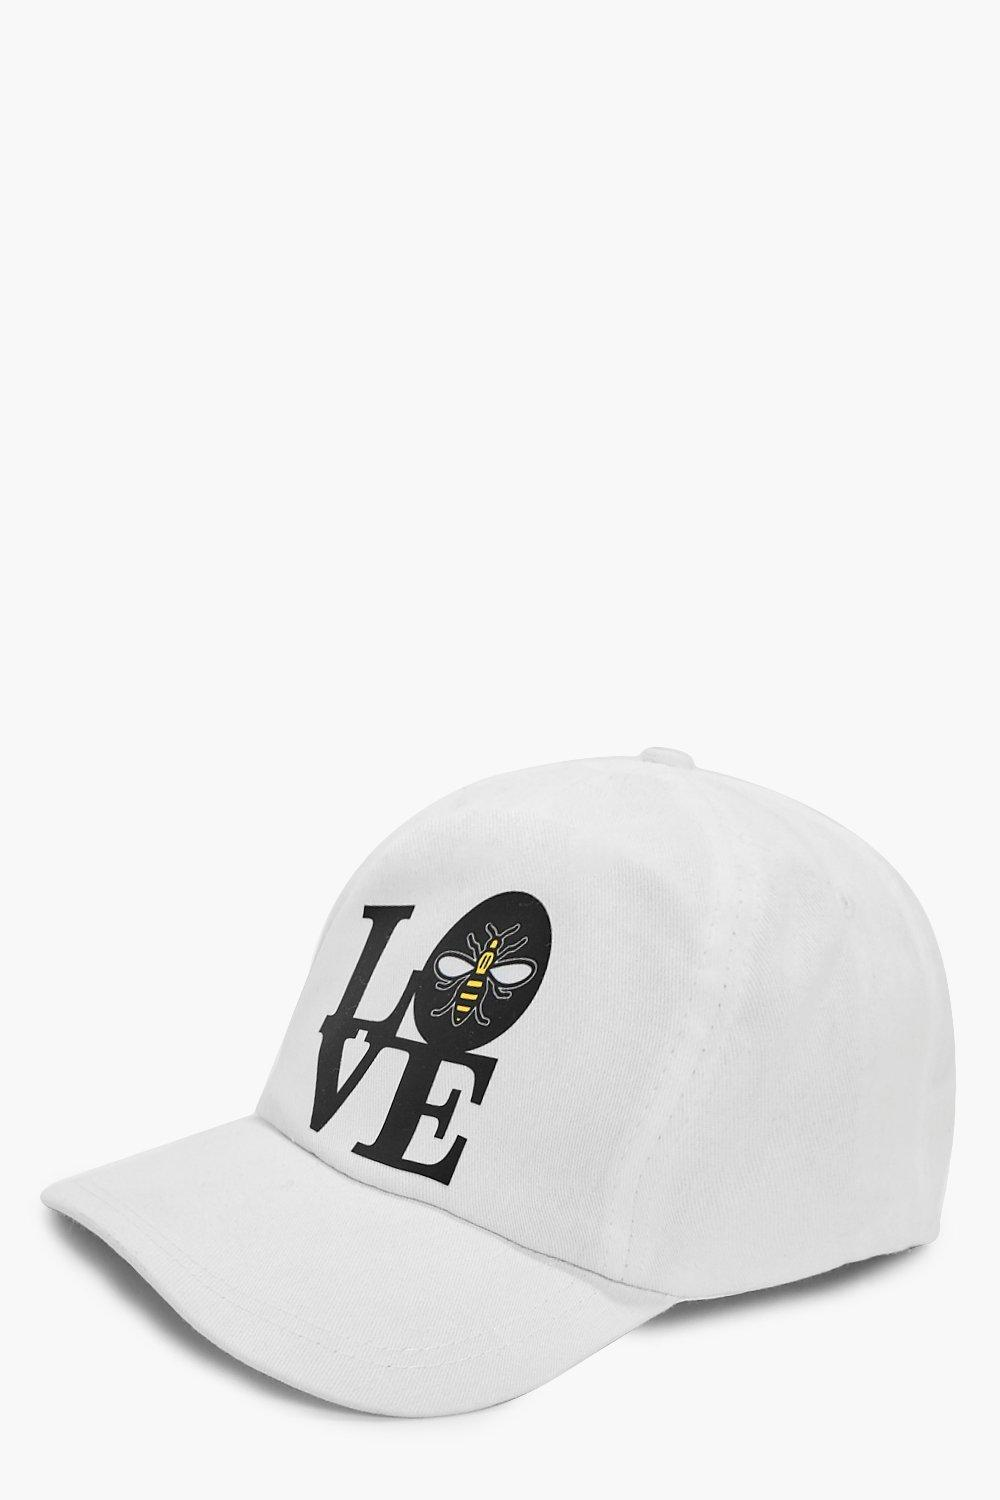 Cap - Love - white - Charity Cap - Love - white